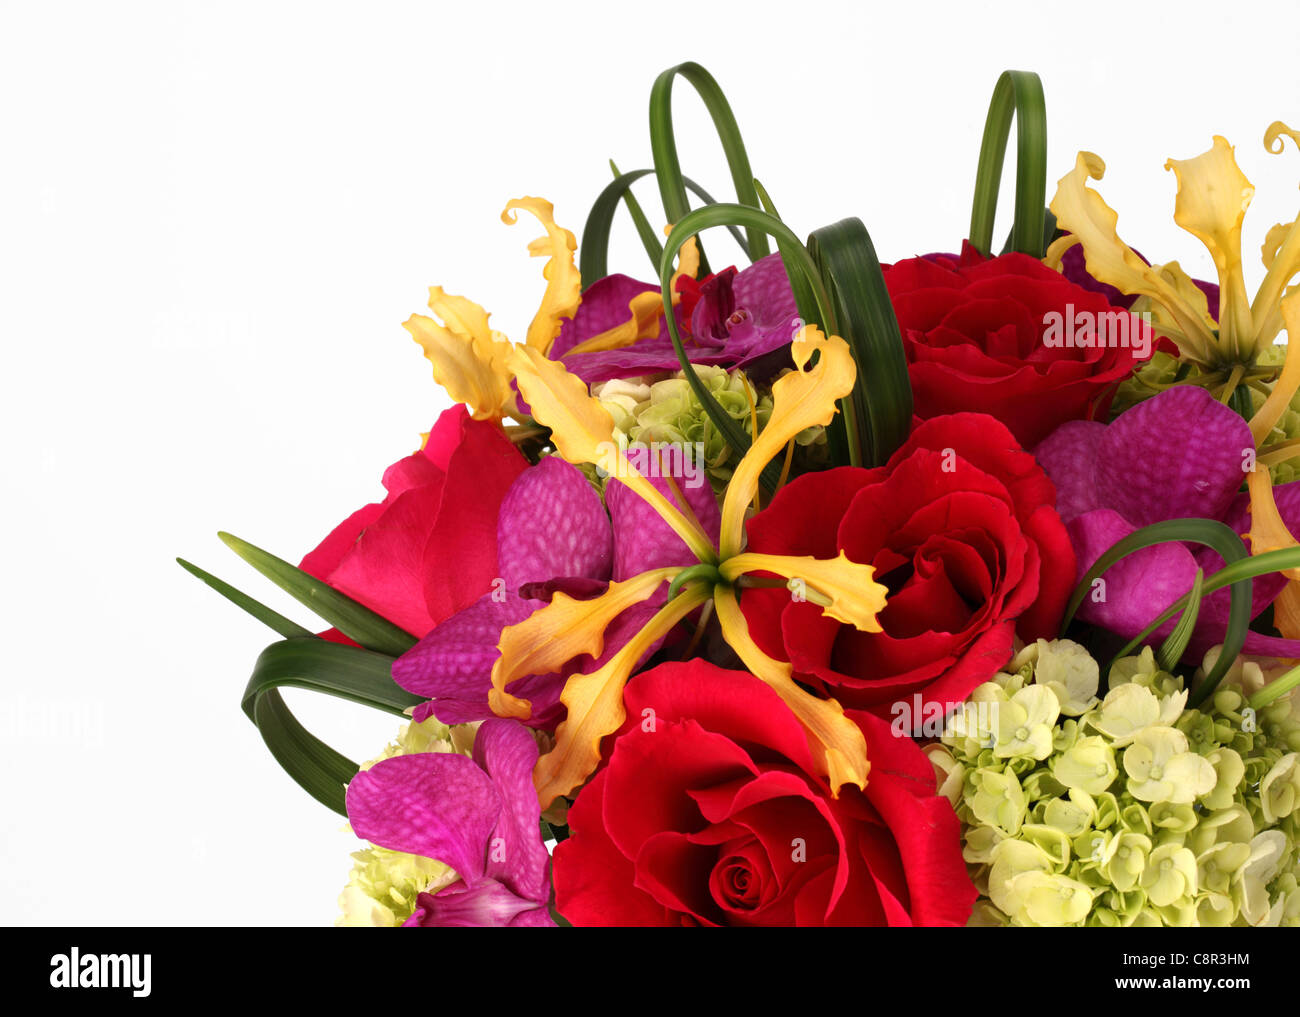 A close up of a colorful bouquet of flowers red roses cream stock a close up of a colorful bouquet of flowers red roses cream hydrangea yellow orchid laelia purple orchid vanda izmirmasajfo